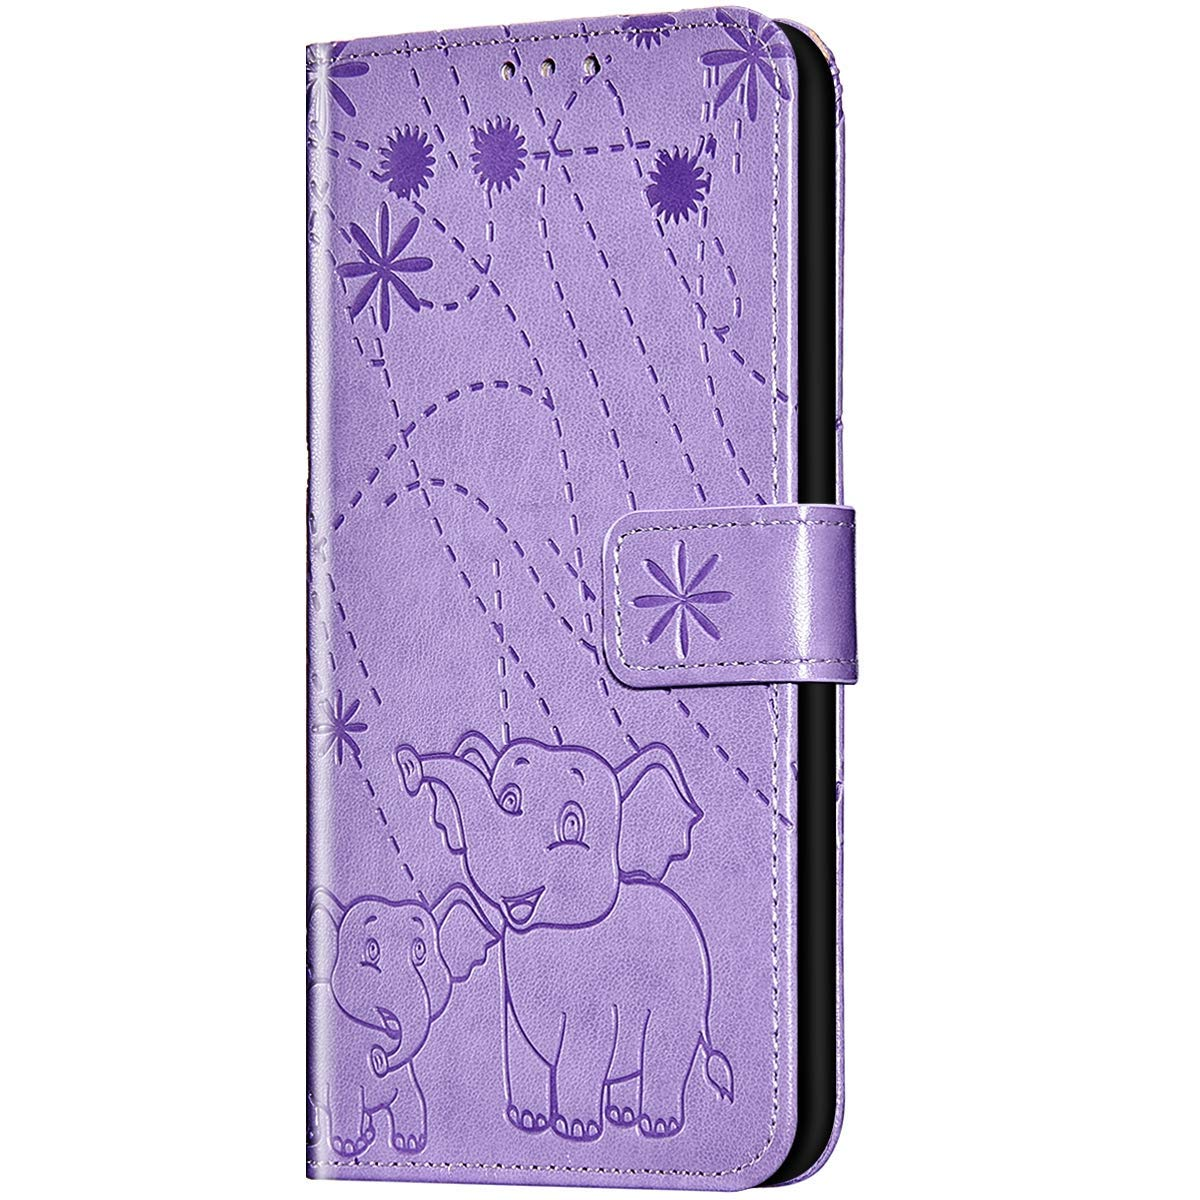 Case for Galaxy S10e Flip Case Premium Soft PU Leather Embossed with Folding Stand, Card Slots, Wristlet and Magnetic Closure Protective Cover for Galaxy S10e,Light purple by ikasus